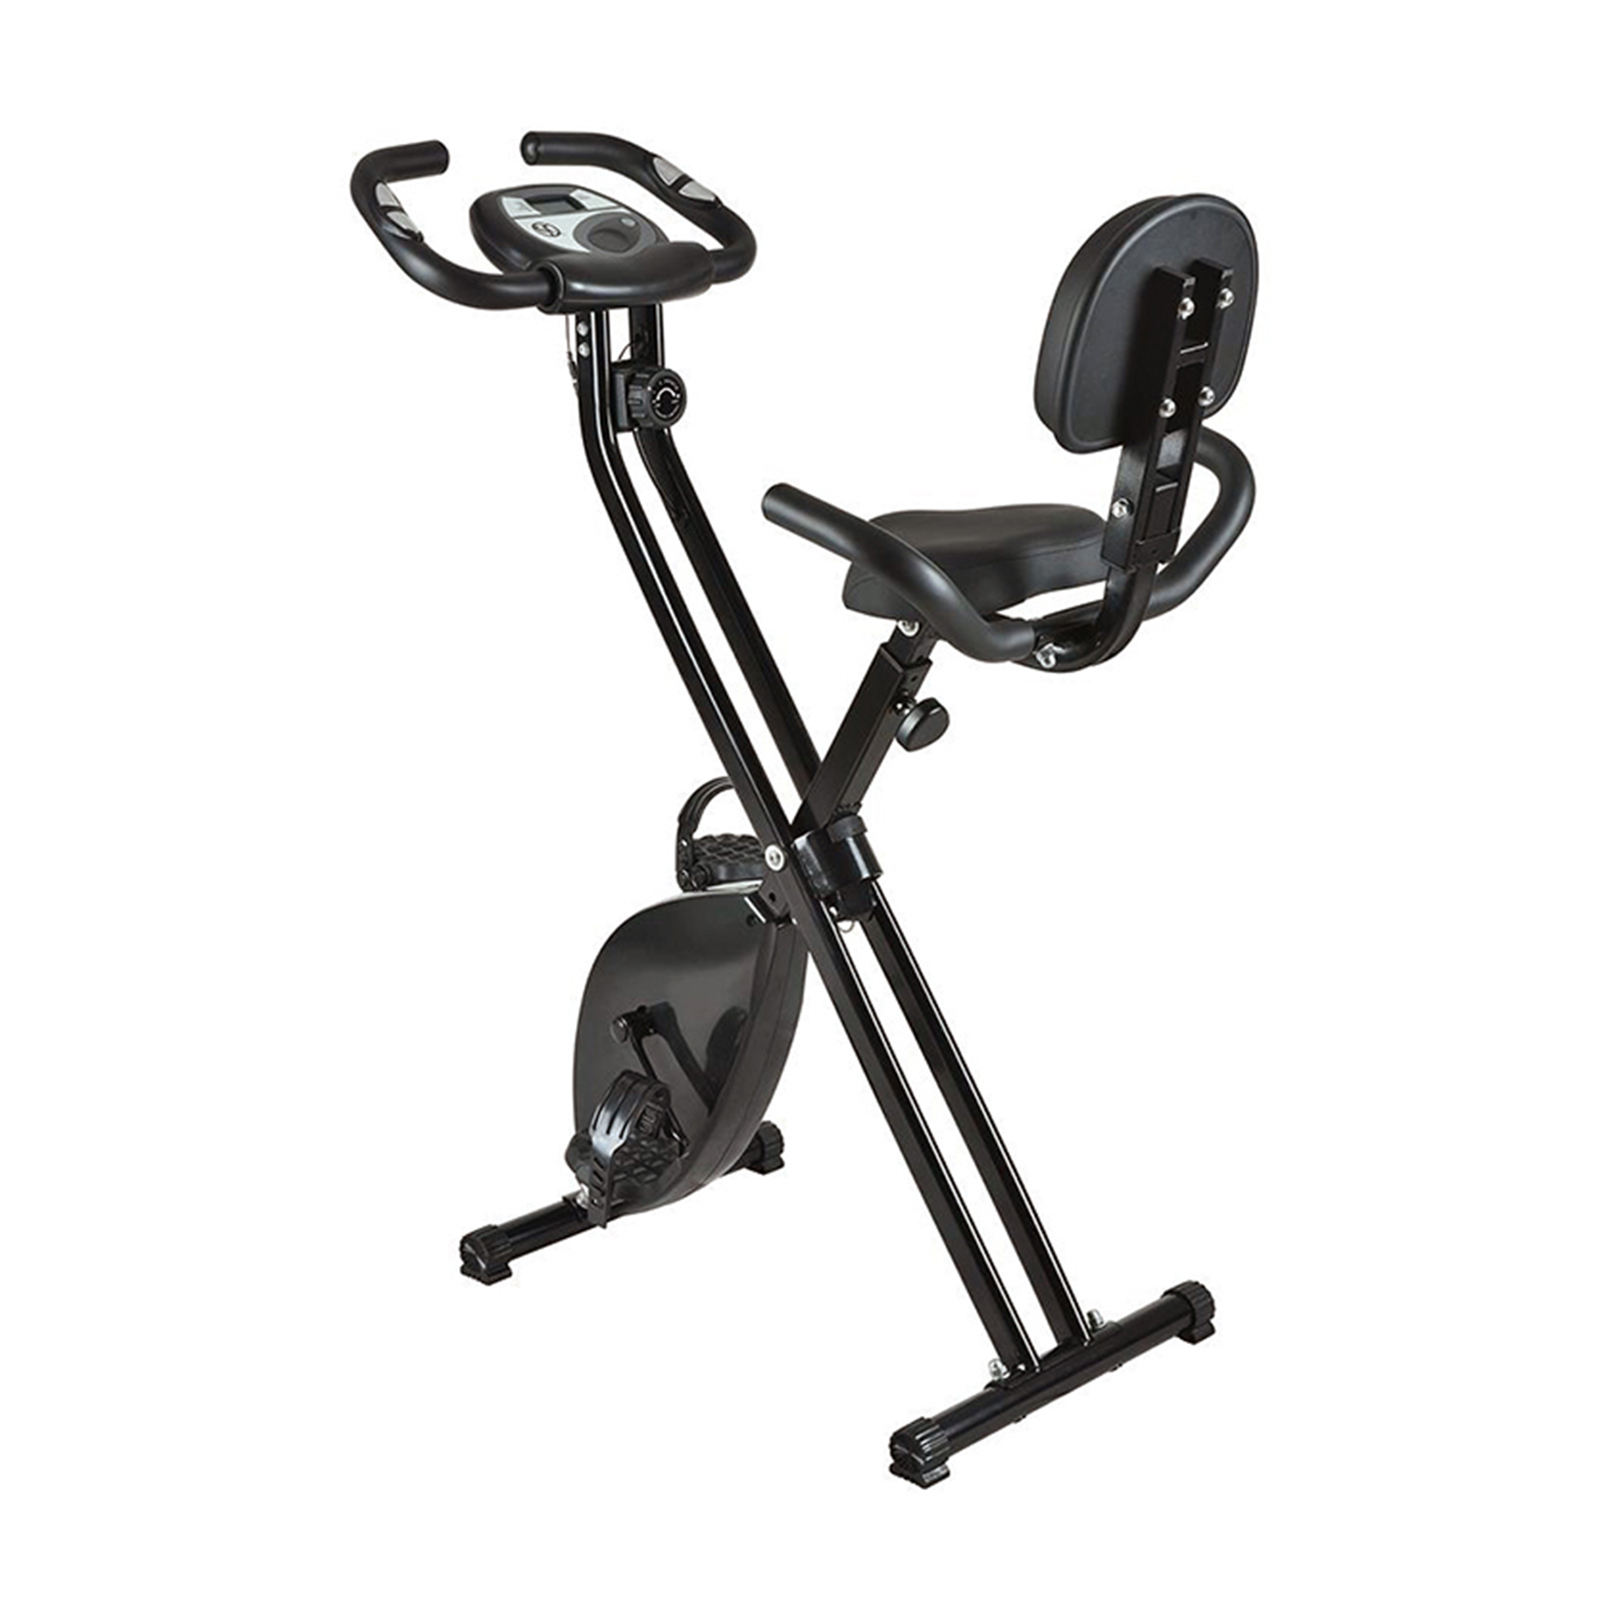 Folding Magnetic Fitness Exercise Bike Recumbent Fitness Bike Exercise Indoor Stationary X Bike With High Quality